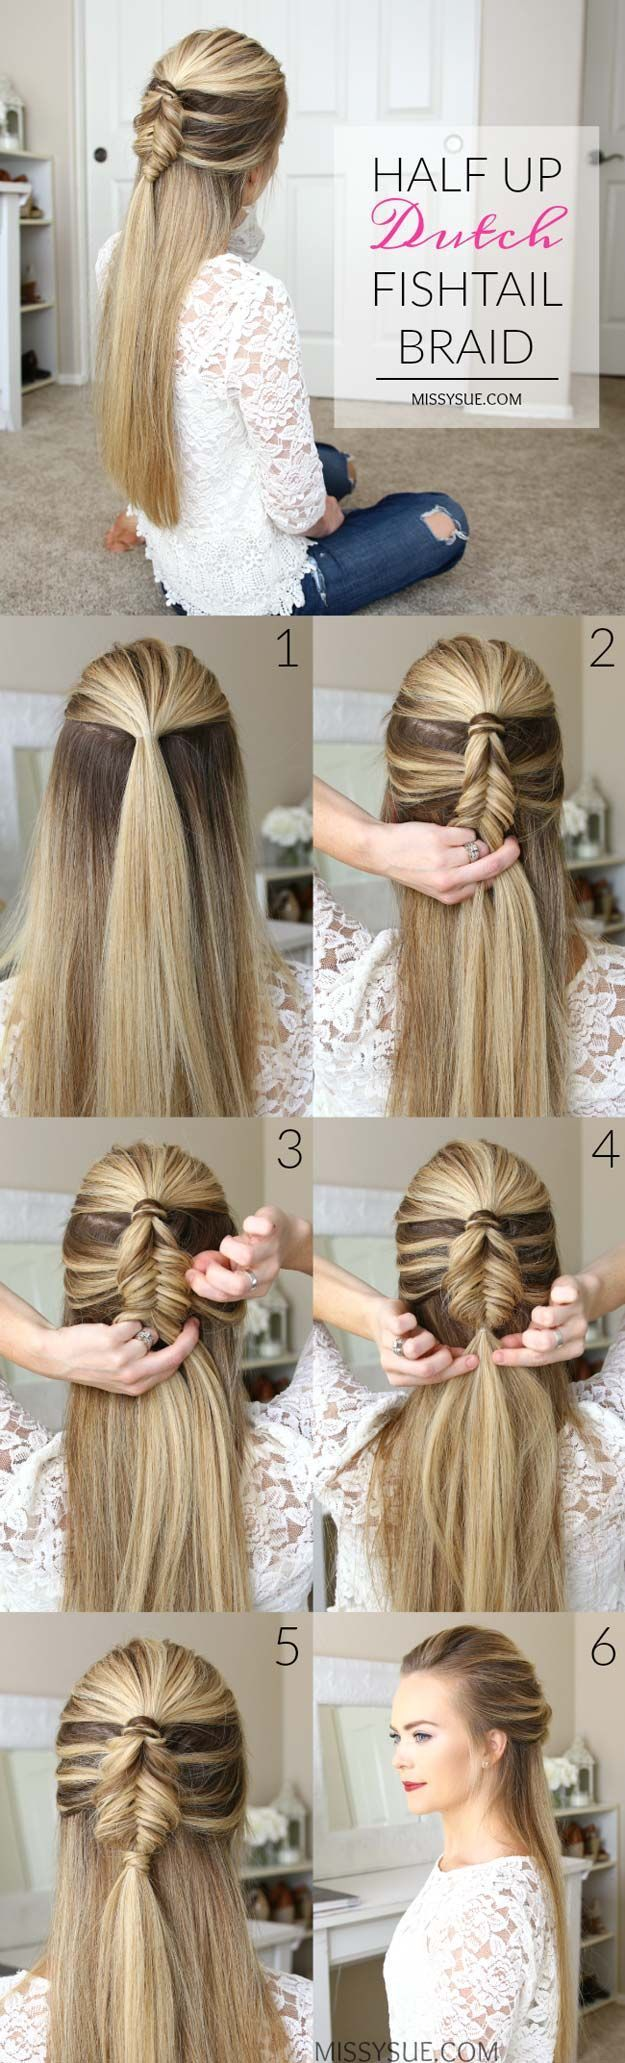 Best Hair Braiding Tutorials - Half Up Dutch Fishtail Braid - Easy Step by Step ...